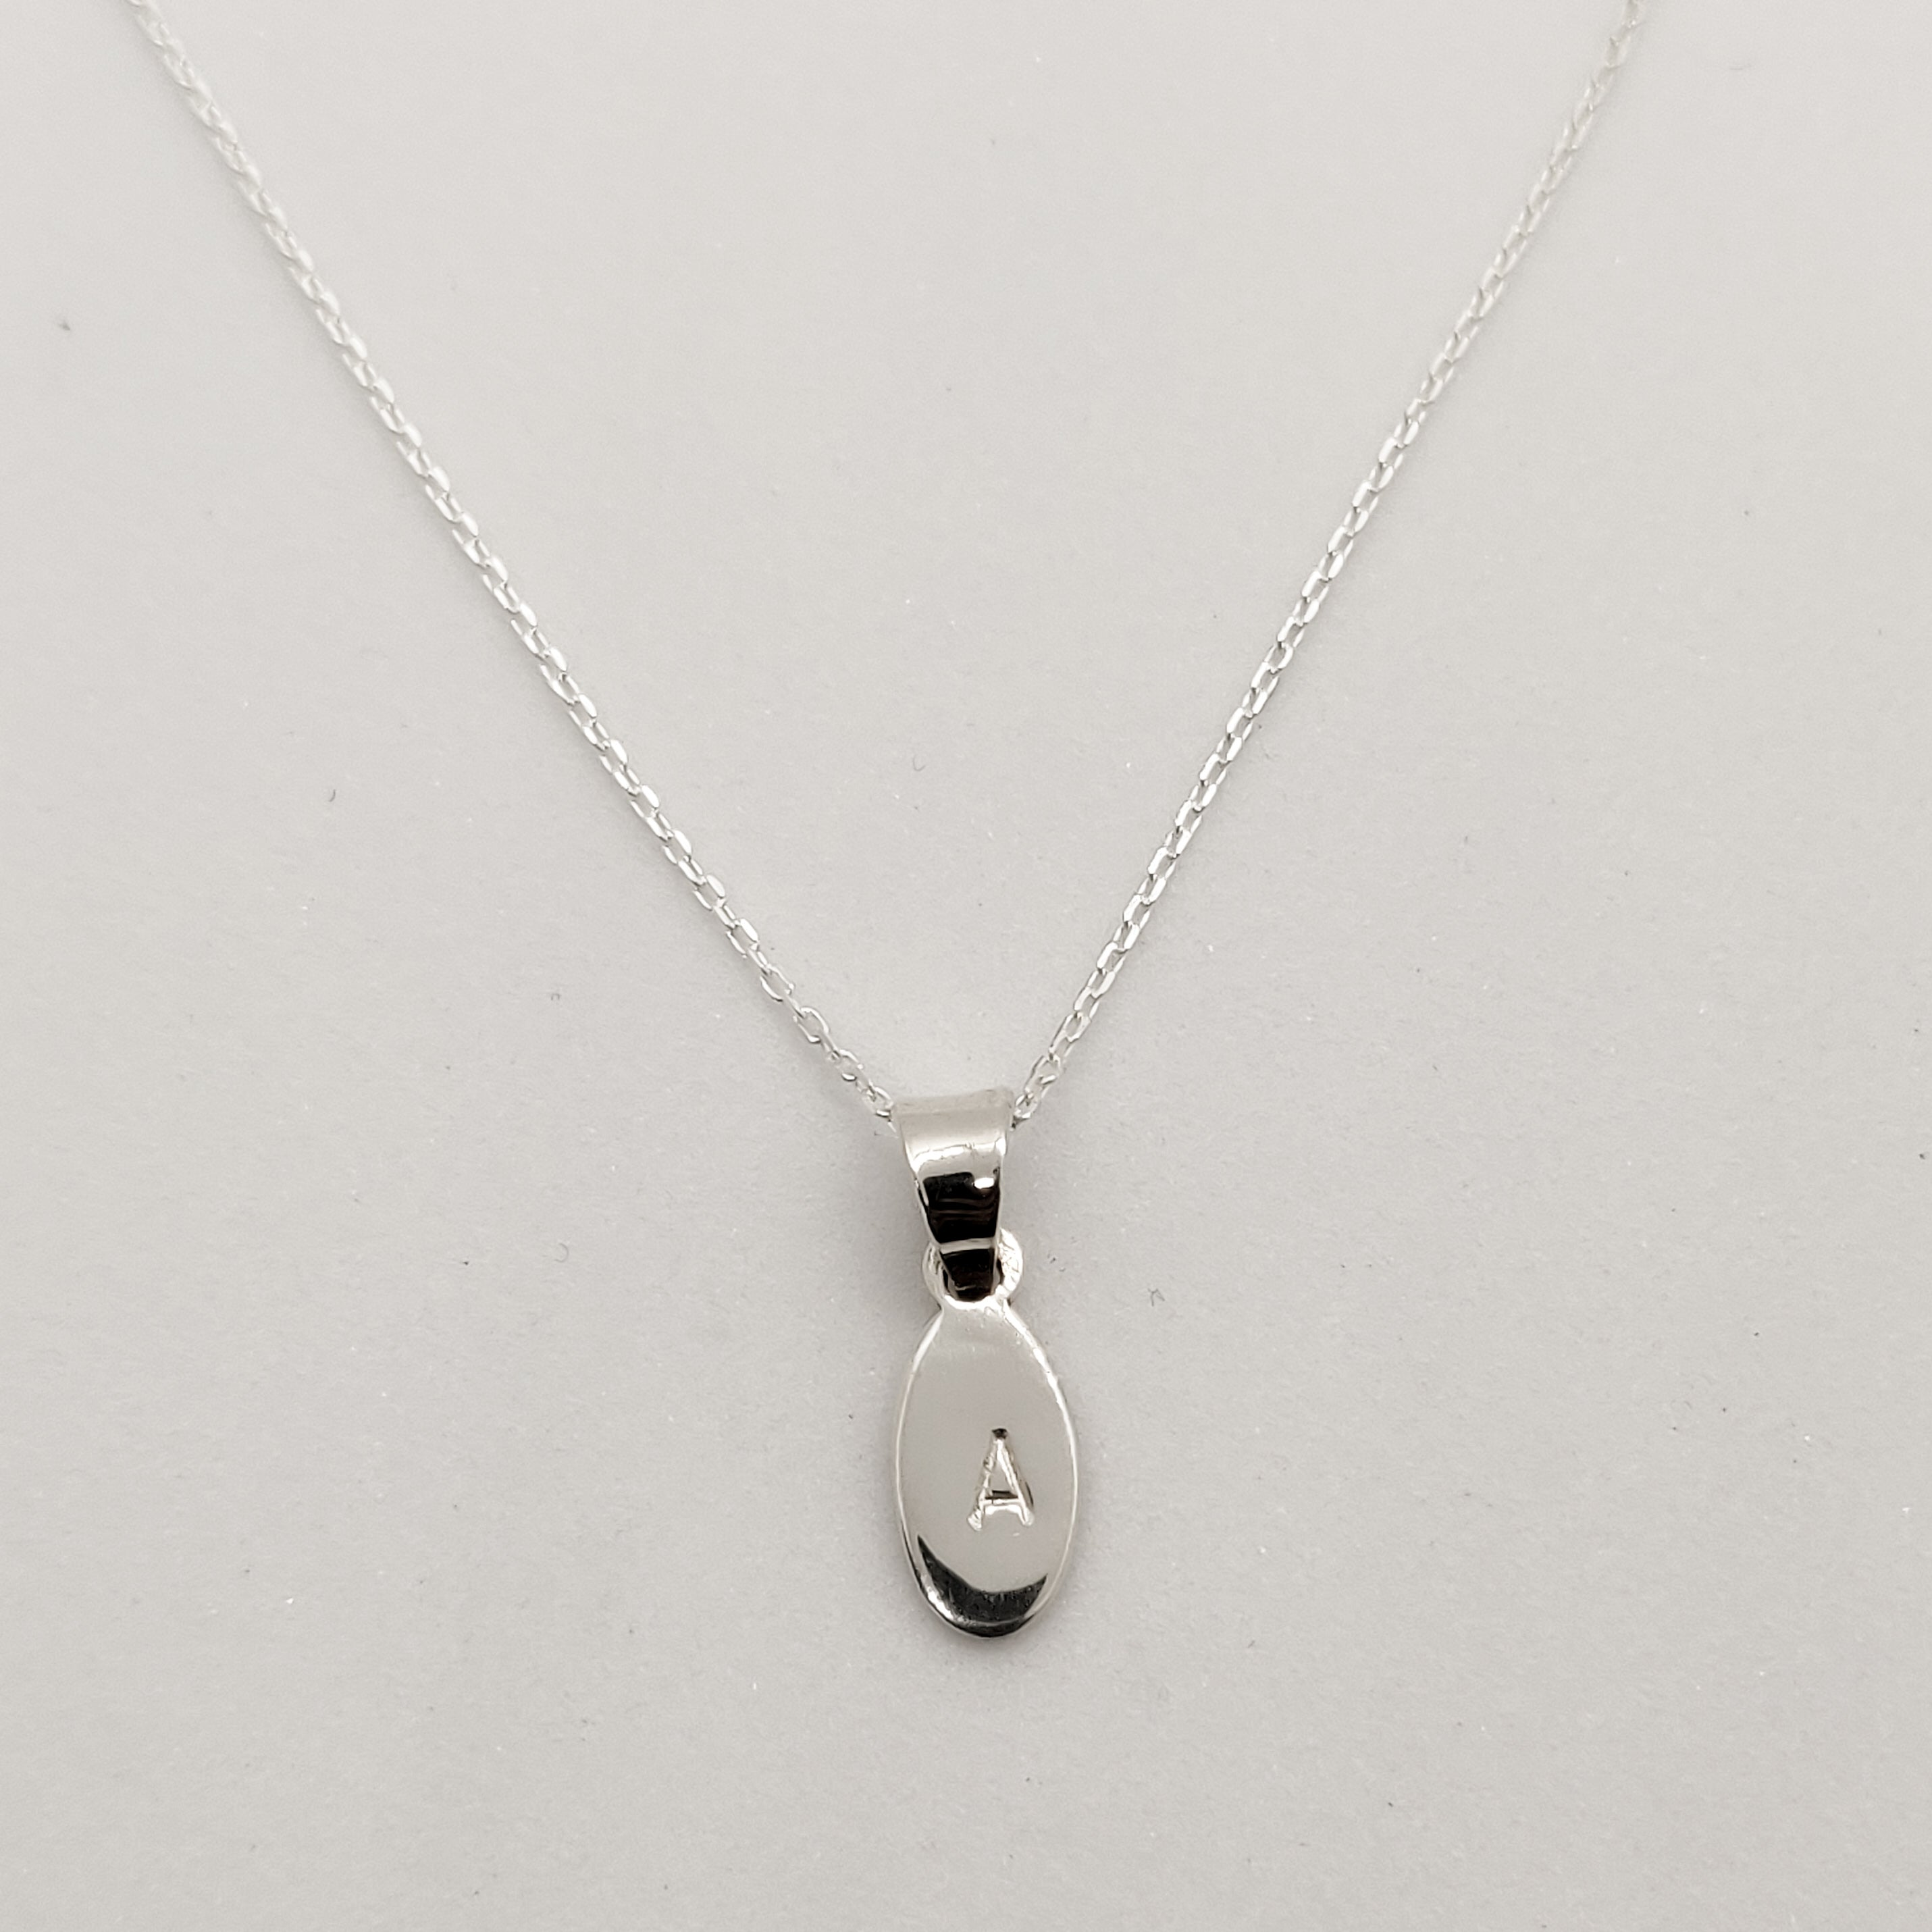 Personalised Silver Drop Pendant Necklace